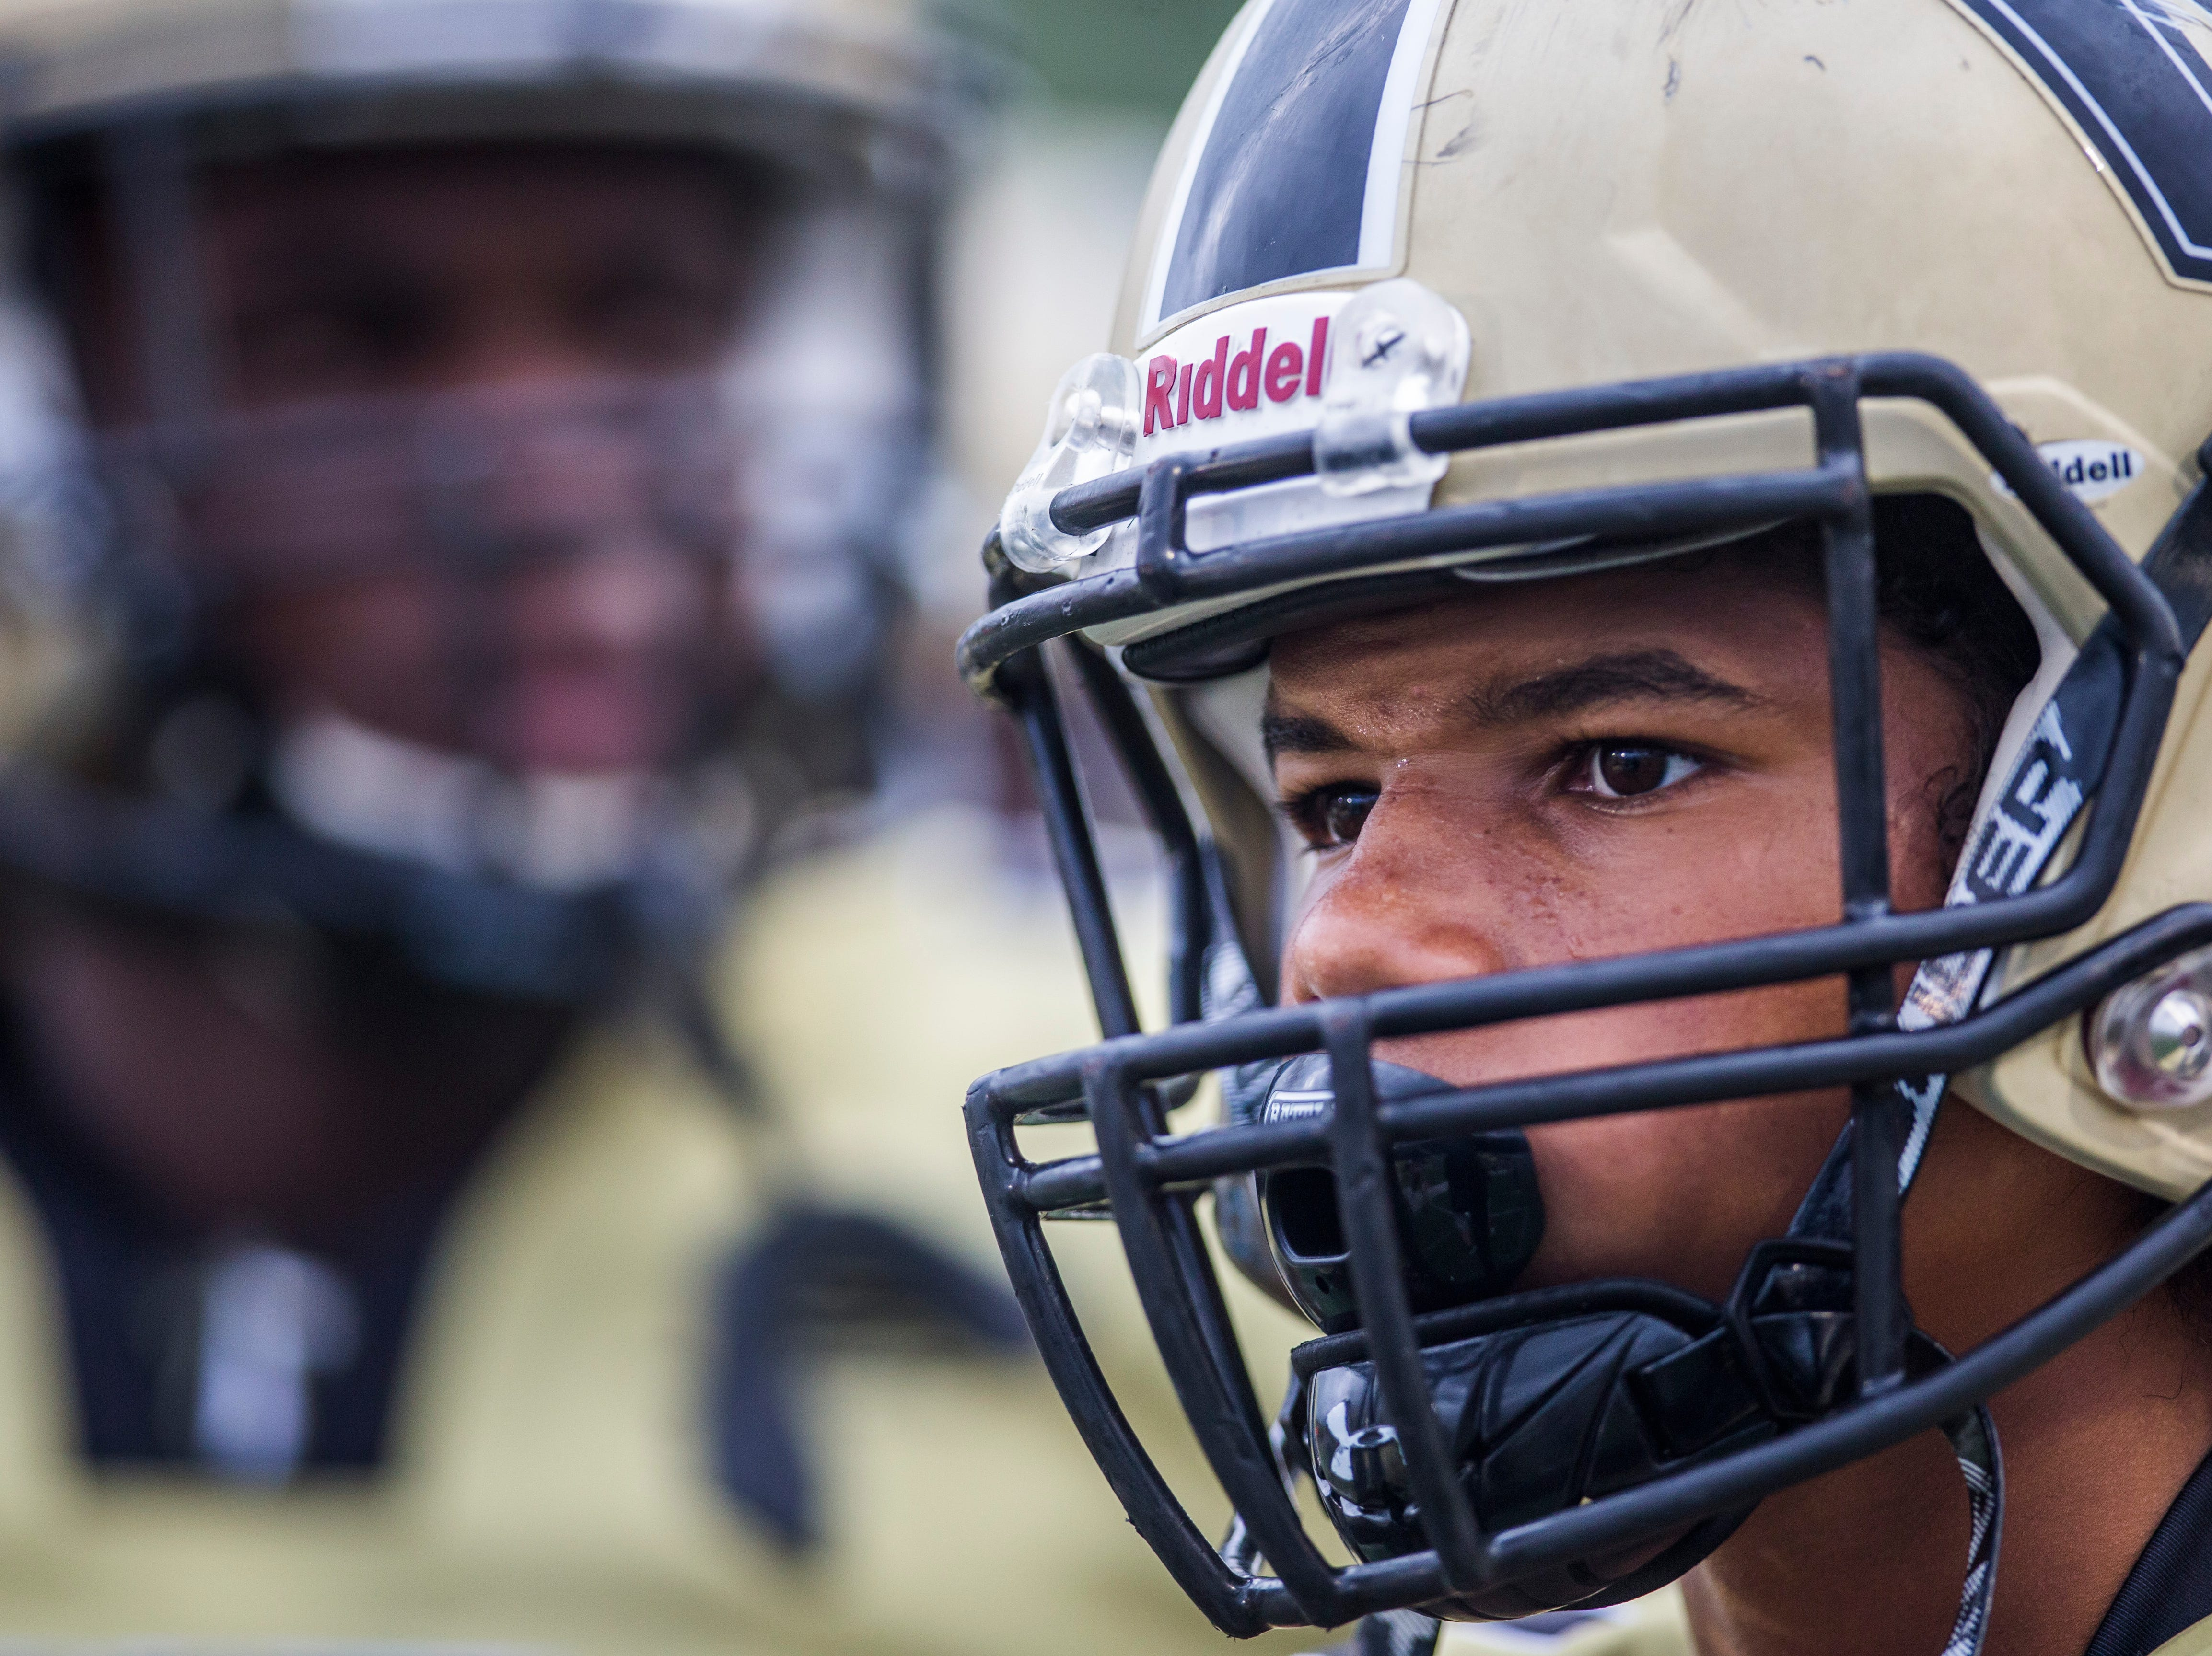 Golden Gate players watch from the sidelines during the game against Immokalee at Golden Gate High School on Friday, Aug. 24, 2018.